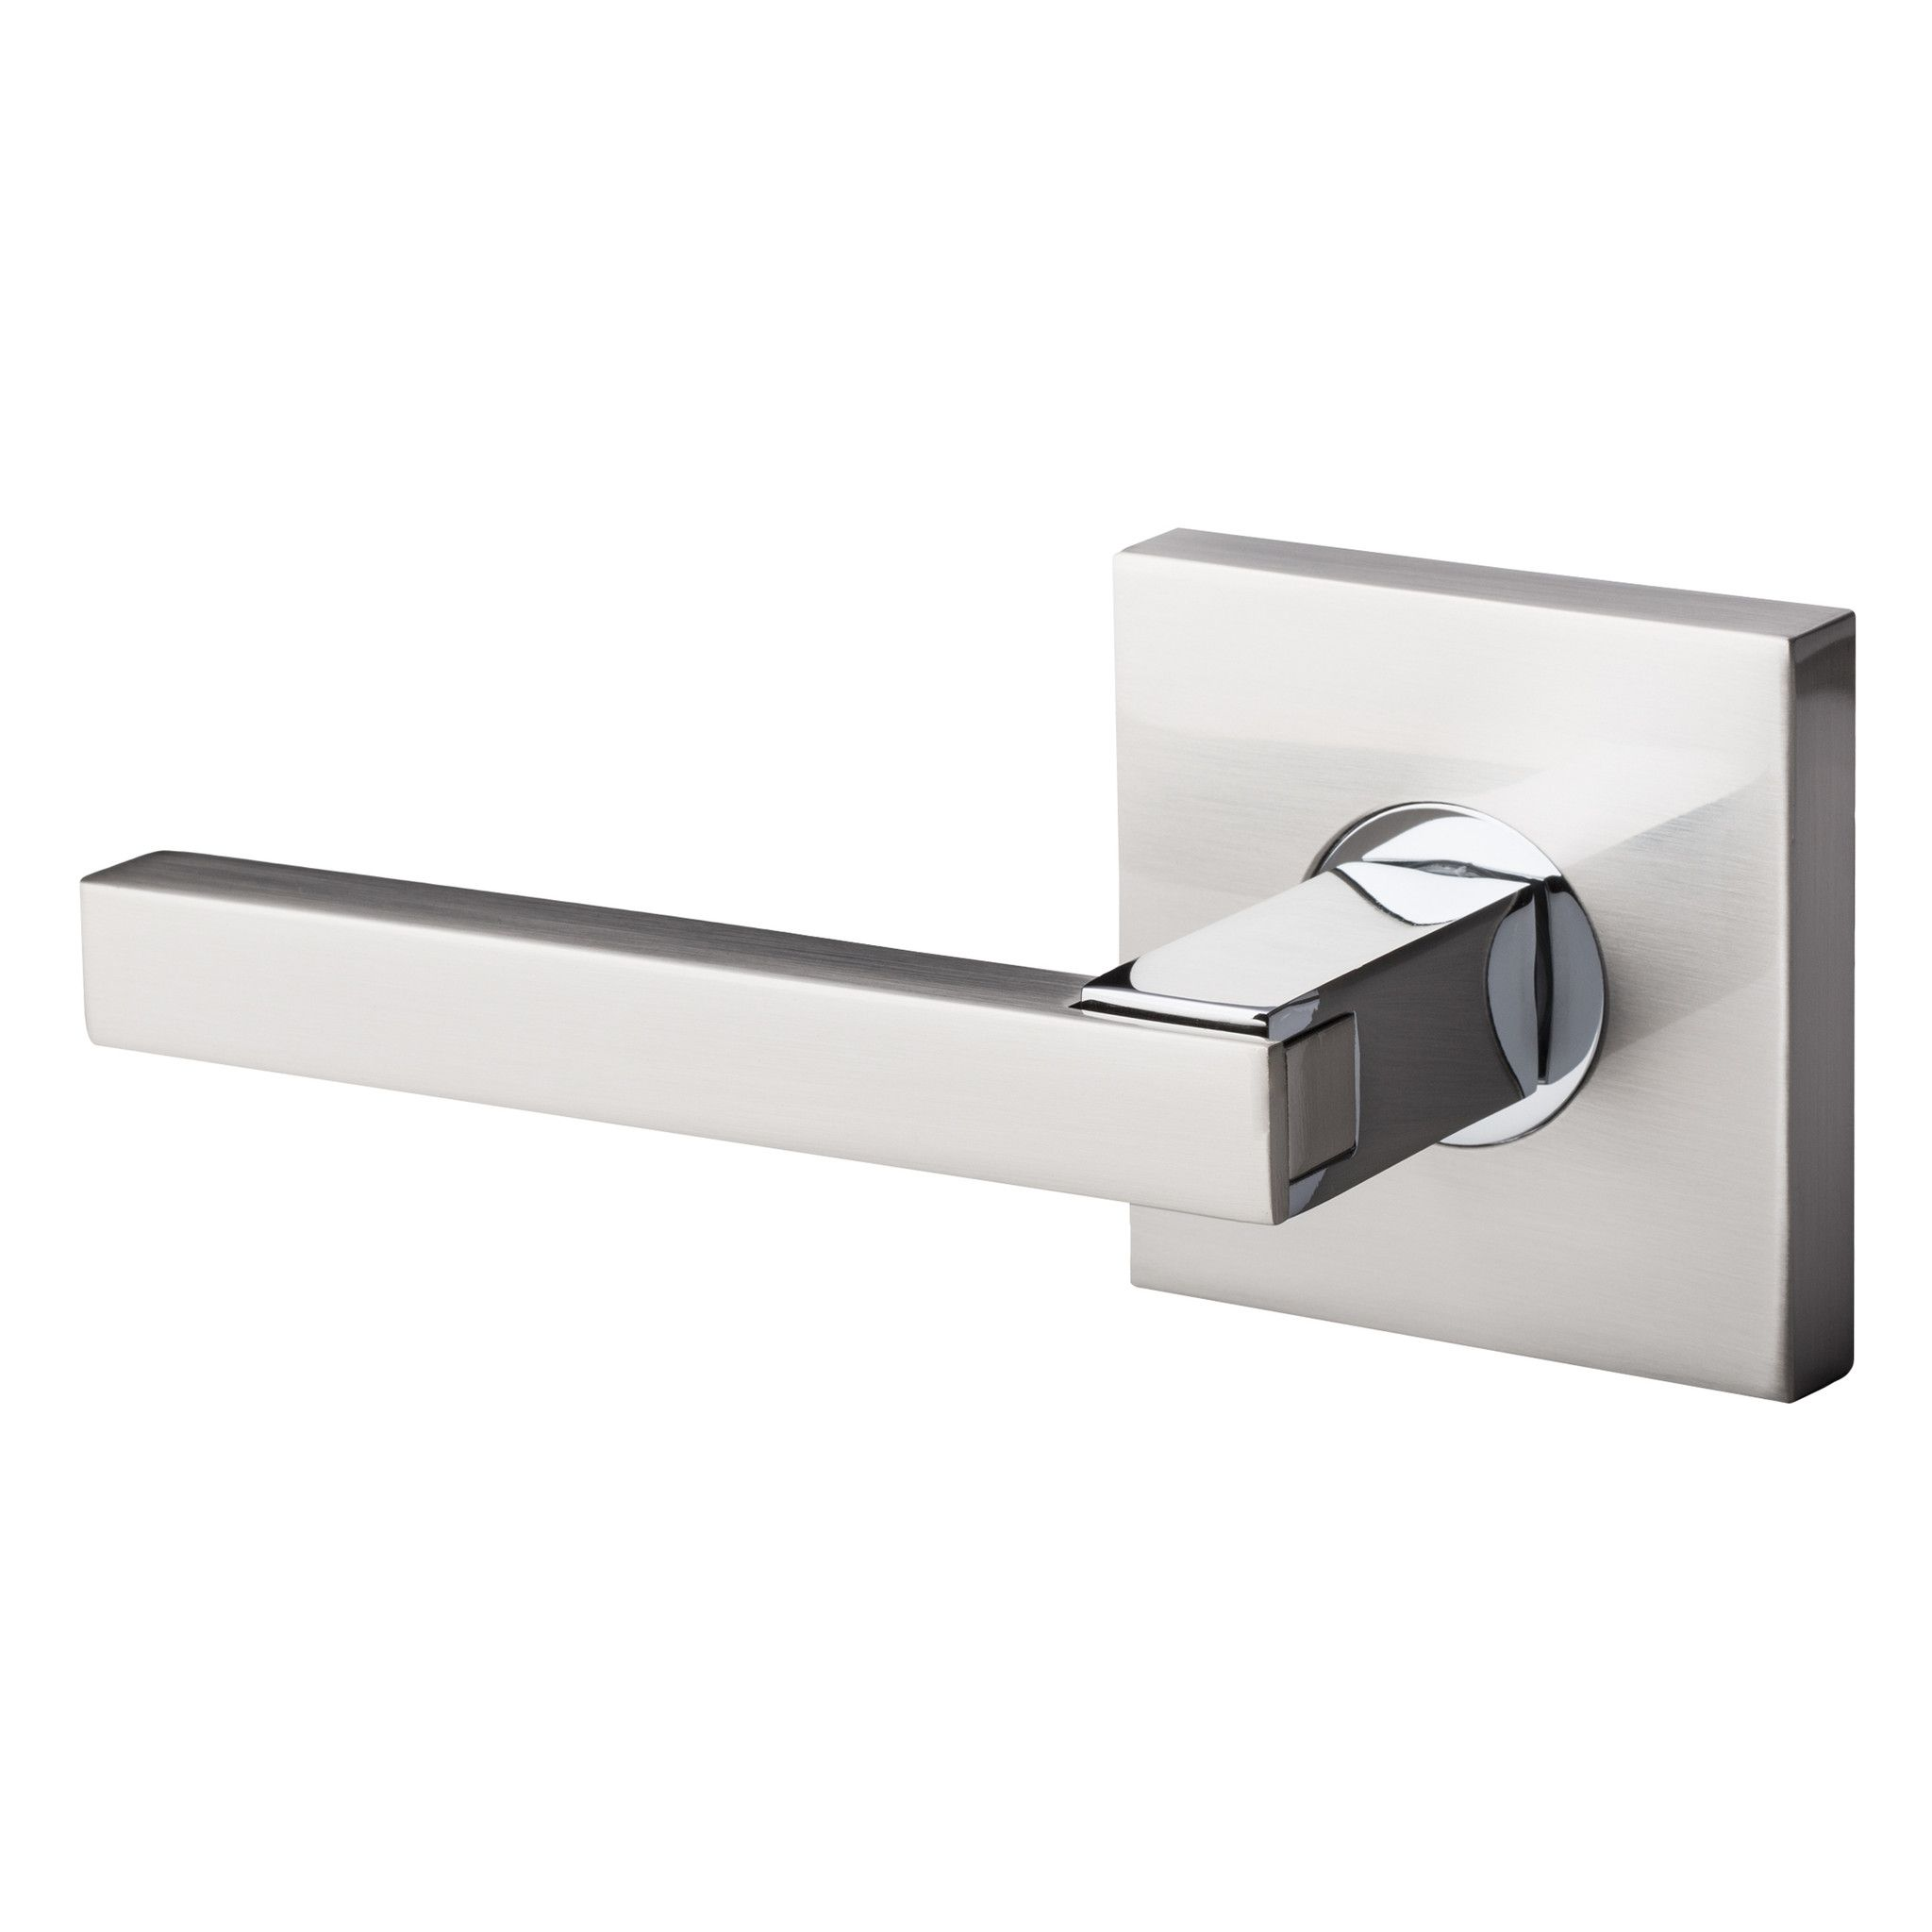 Bai 3016 Inactive Dummy Modern Door Lever Handle Set Modern Door Door Levers And Doors